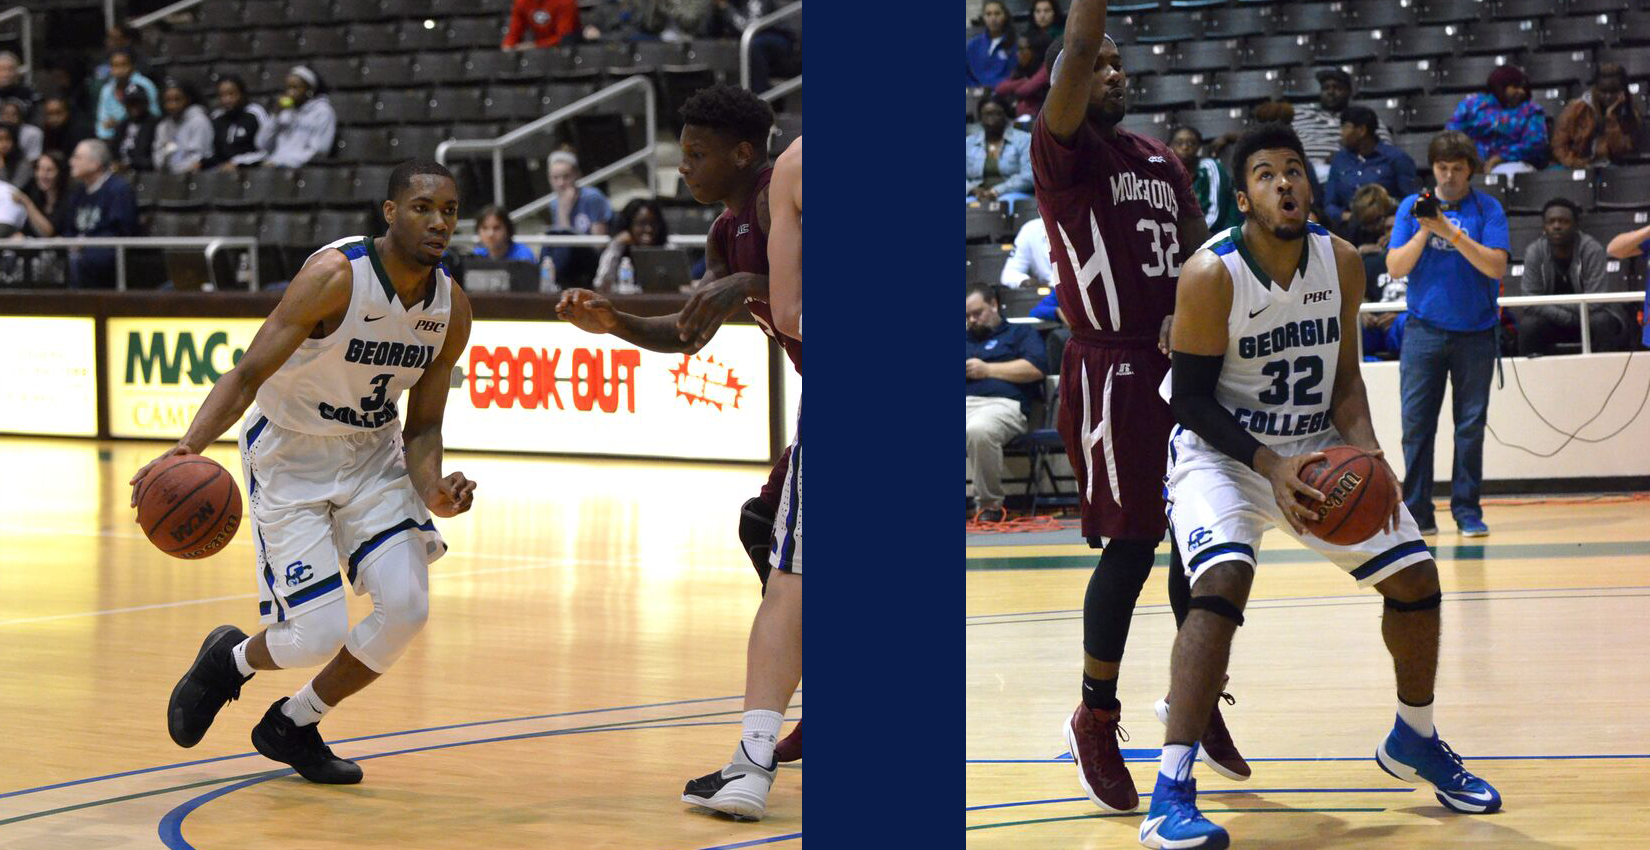 Bobcat Men Make it Four Straight with Thrilling Victory over Clark Atlanta, 68-66